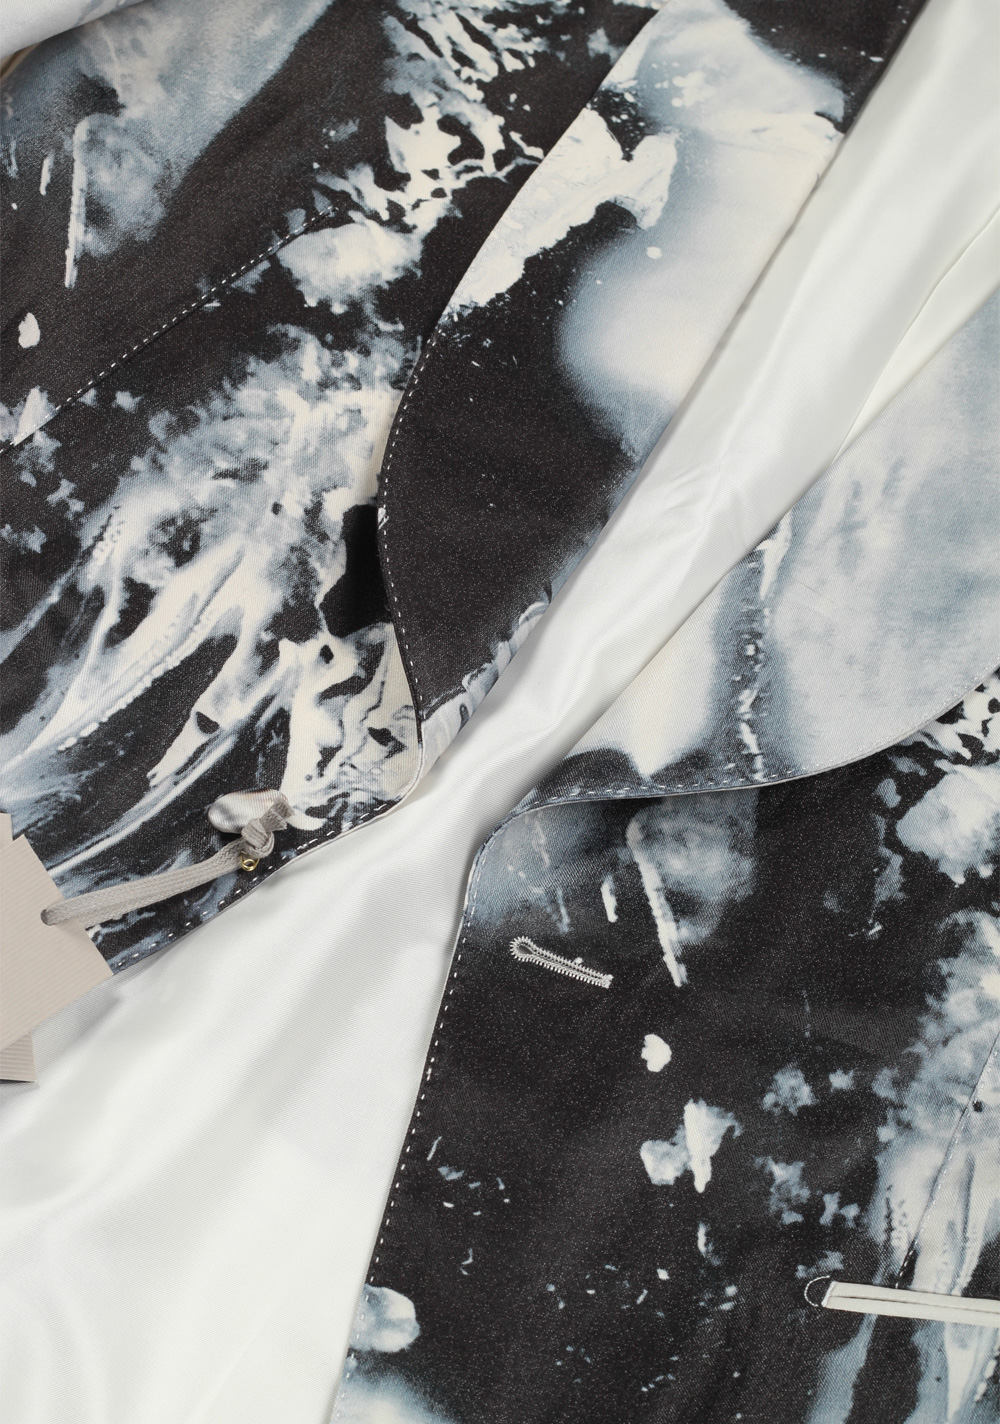 TOM FORD Atticus Painted Swirl Tuxedo Cocktail Dinner Jacket Size 52 / 42R U.S. | Costume Limité